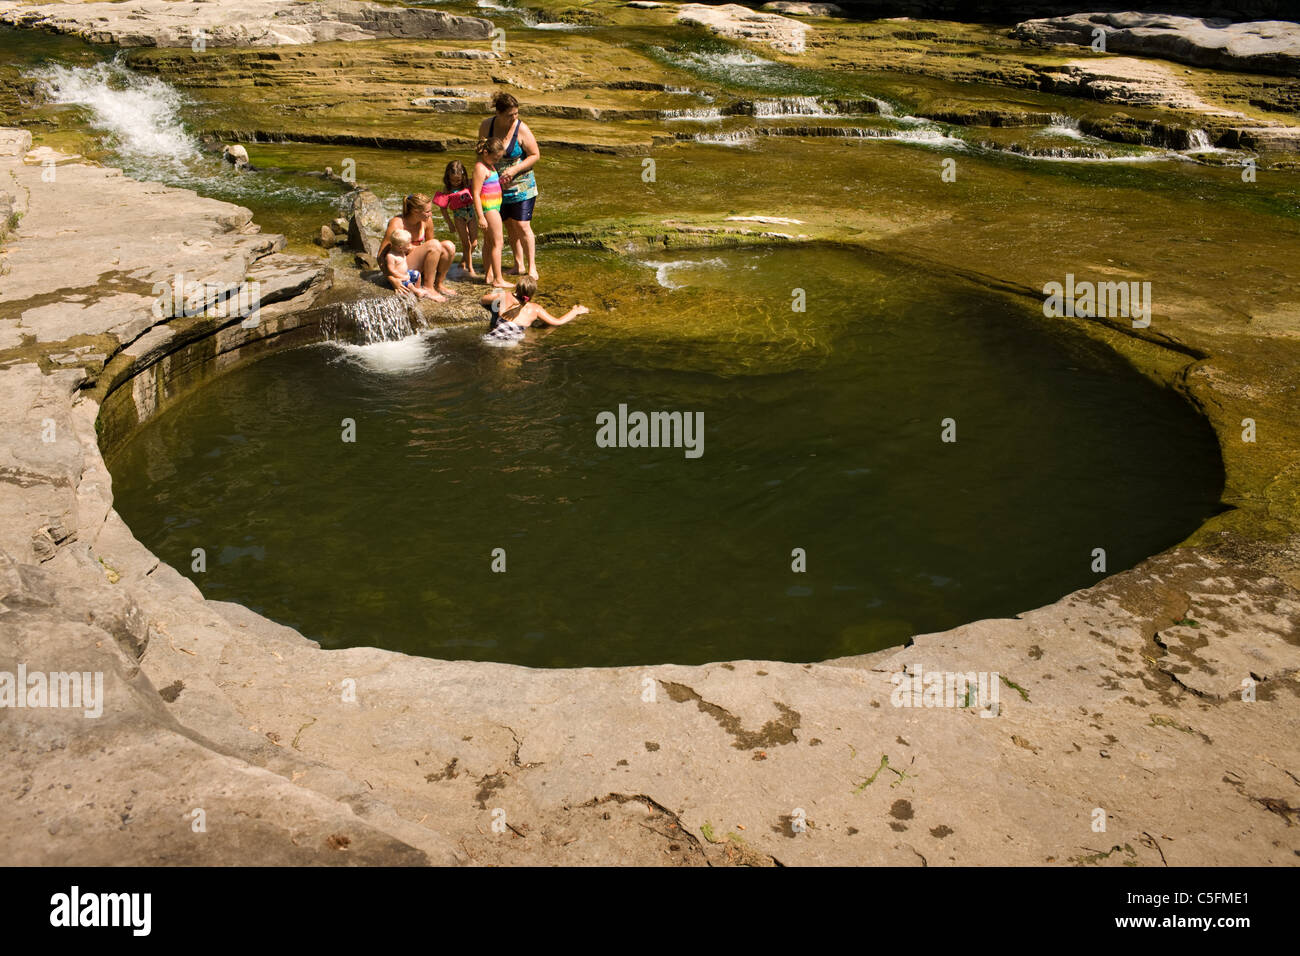 Families and friends swim in the 'Boiling Pot', Canajoharie, MOhawk Valley, Montgomery County, New York - Stock Image